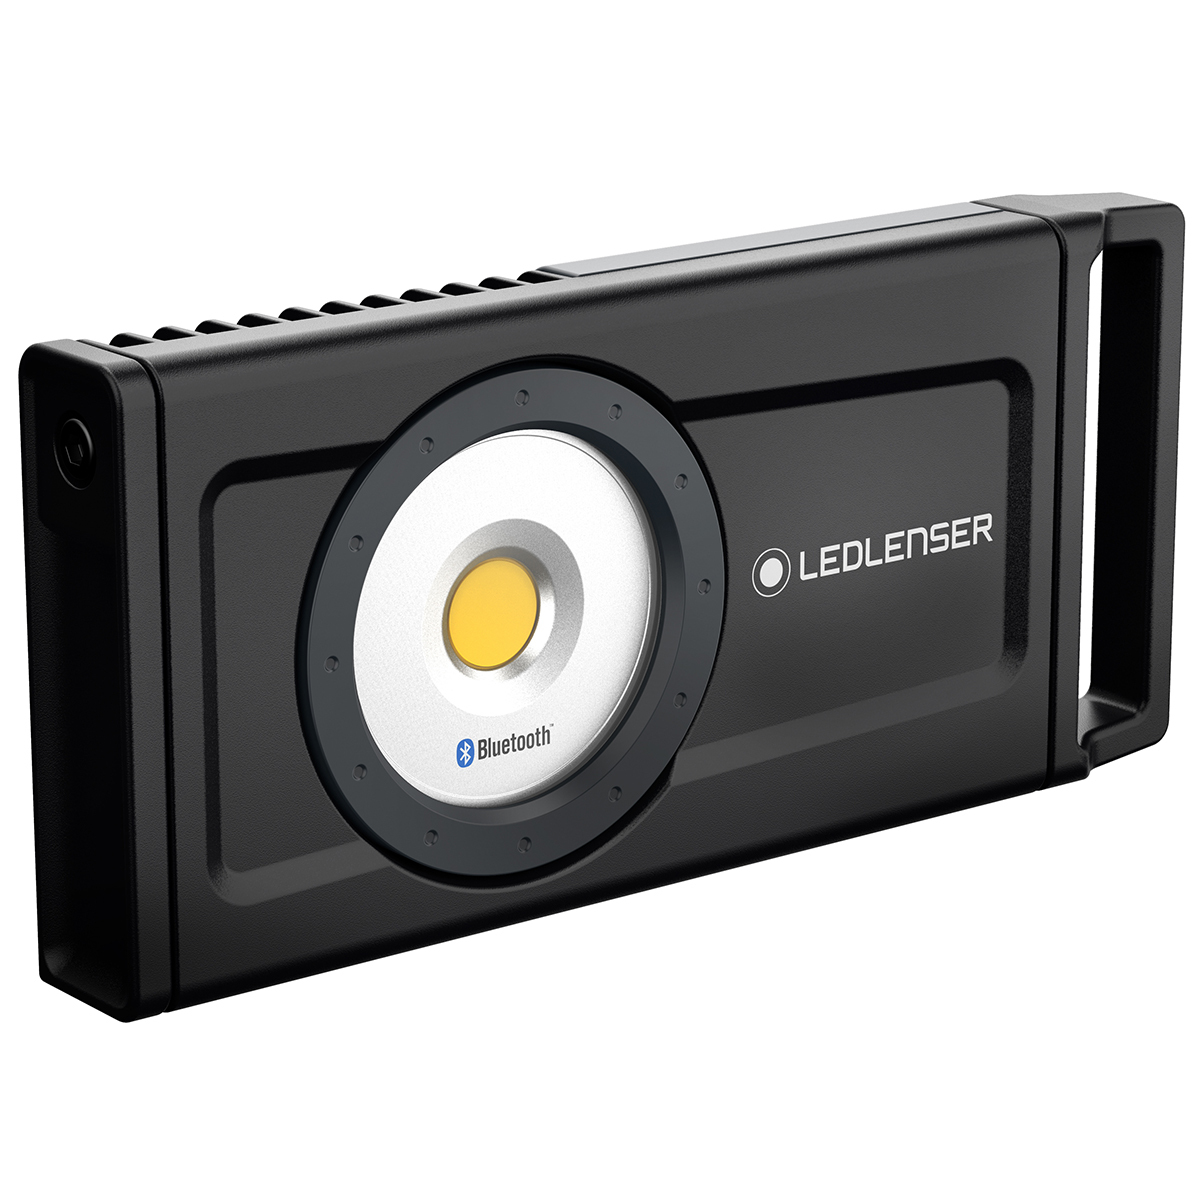 Ledlenser_LL502002_iF8R Floodlight